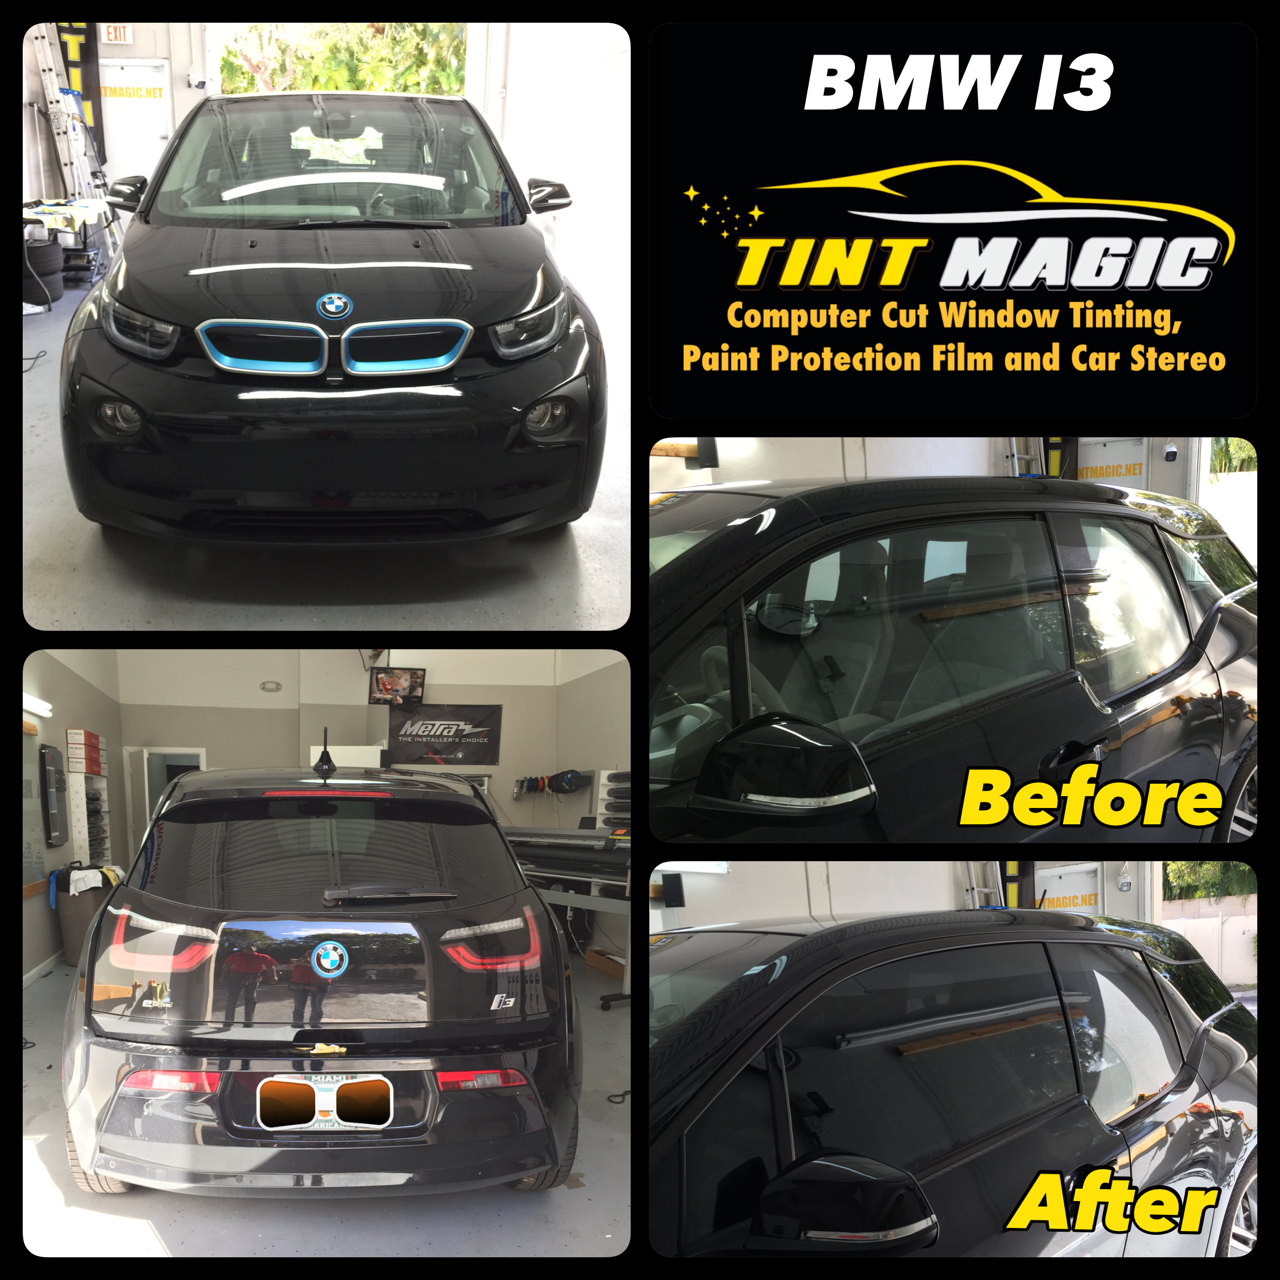 BMW I3 at Tint Magic Window Tinting Coral Springs